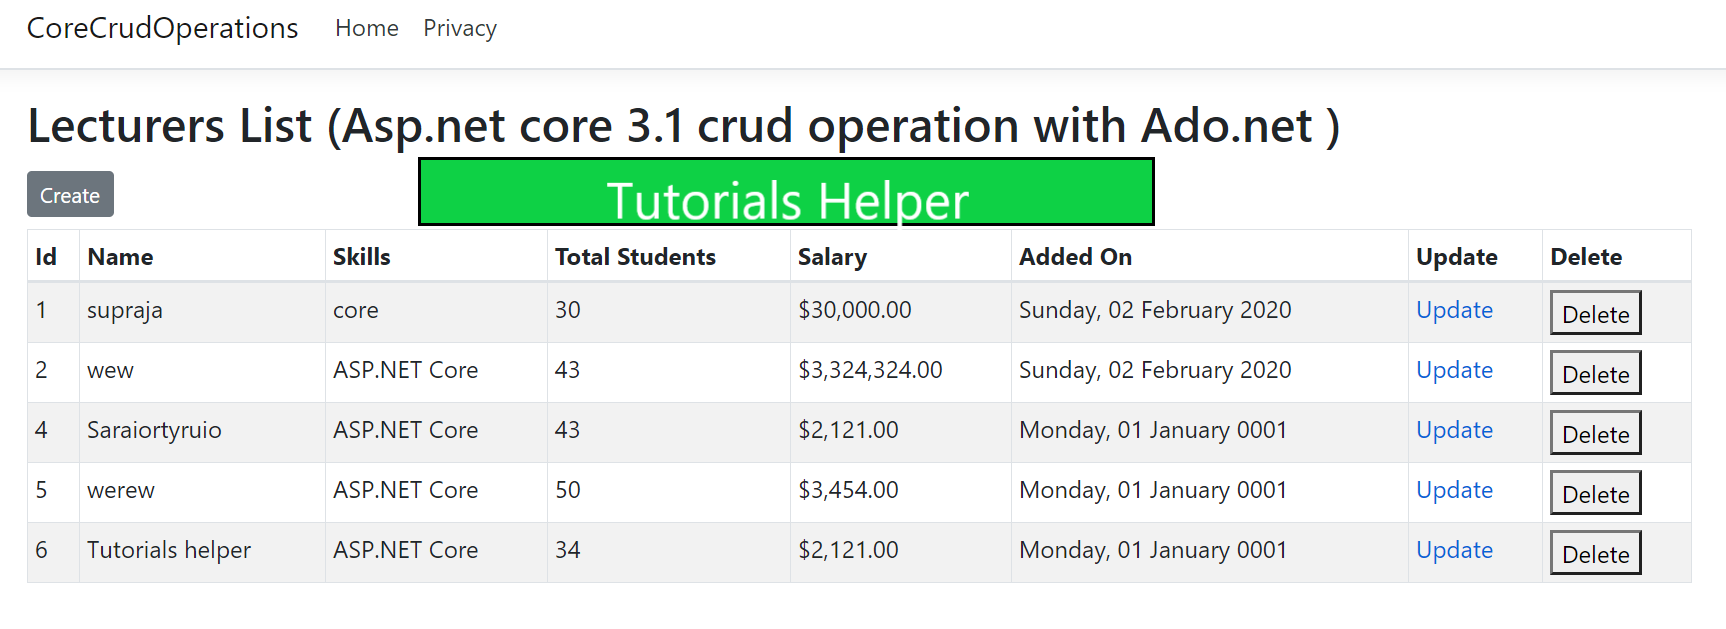 Asp.net core 3.1 crud operation with Ado.net